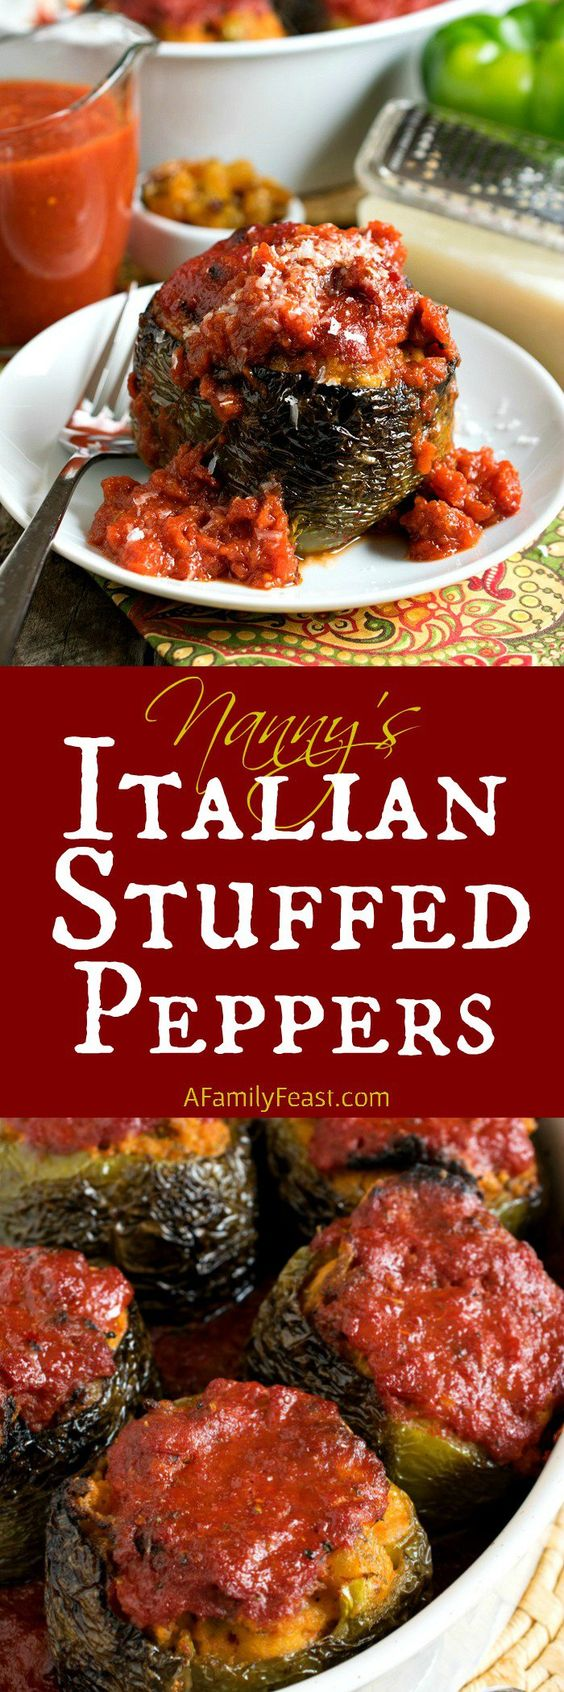 Nanny's Italian Stuffed Peppers - A recipe passed down through generations, these stuffed peppers have a delicious bread stuffing inside tender bell peppers.